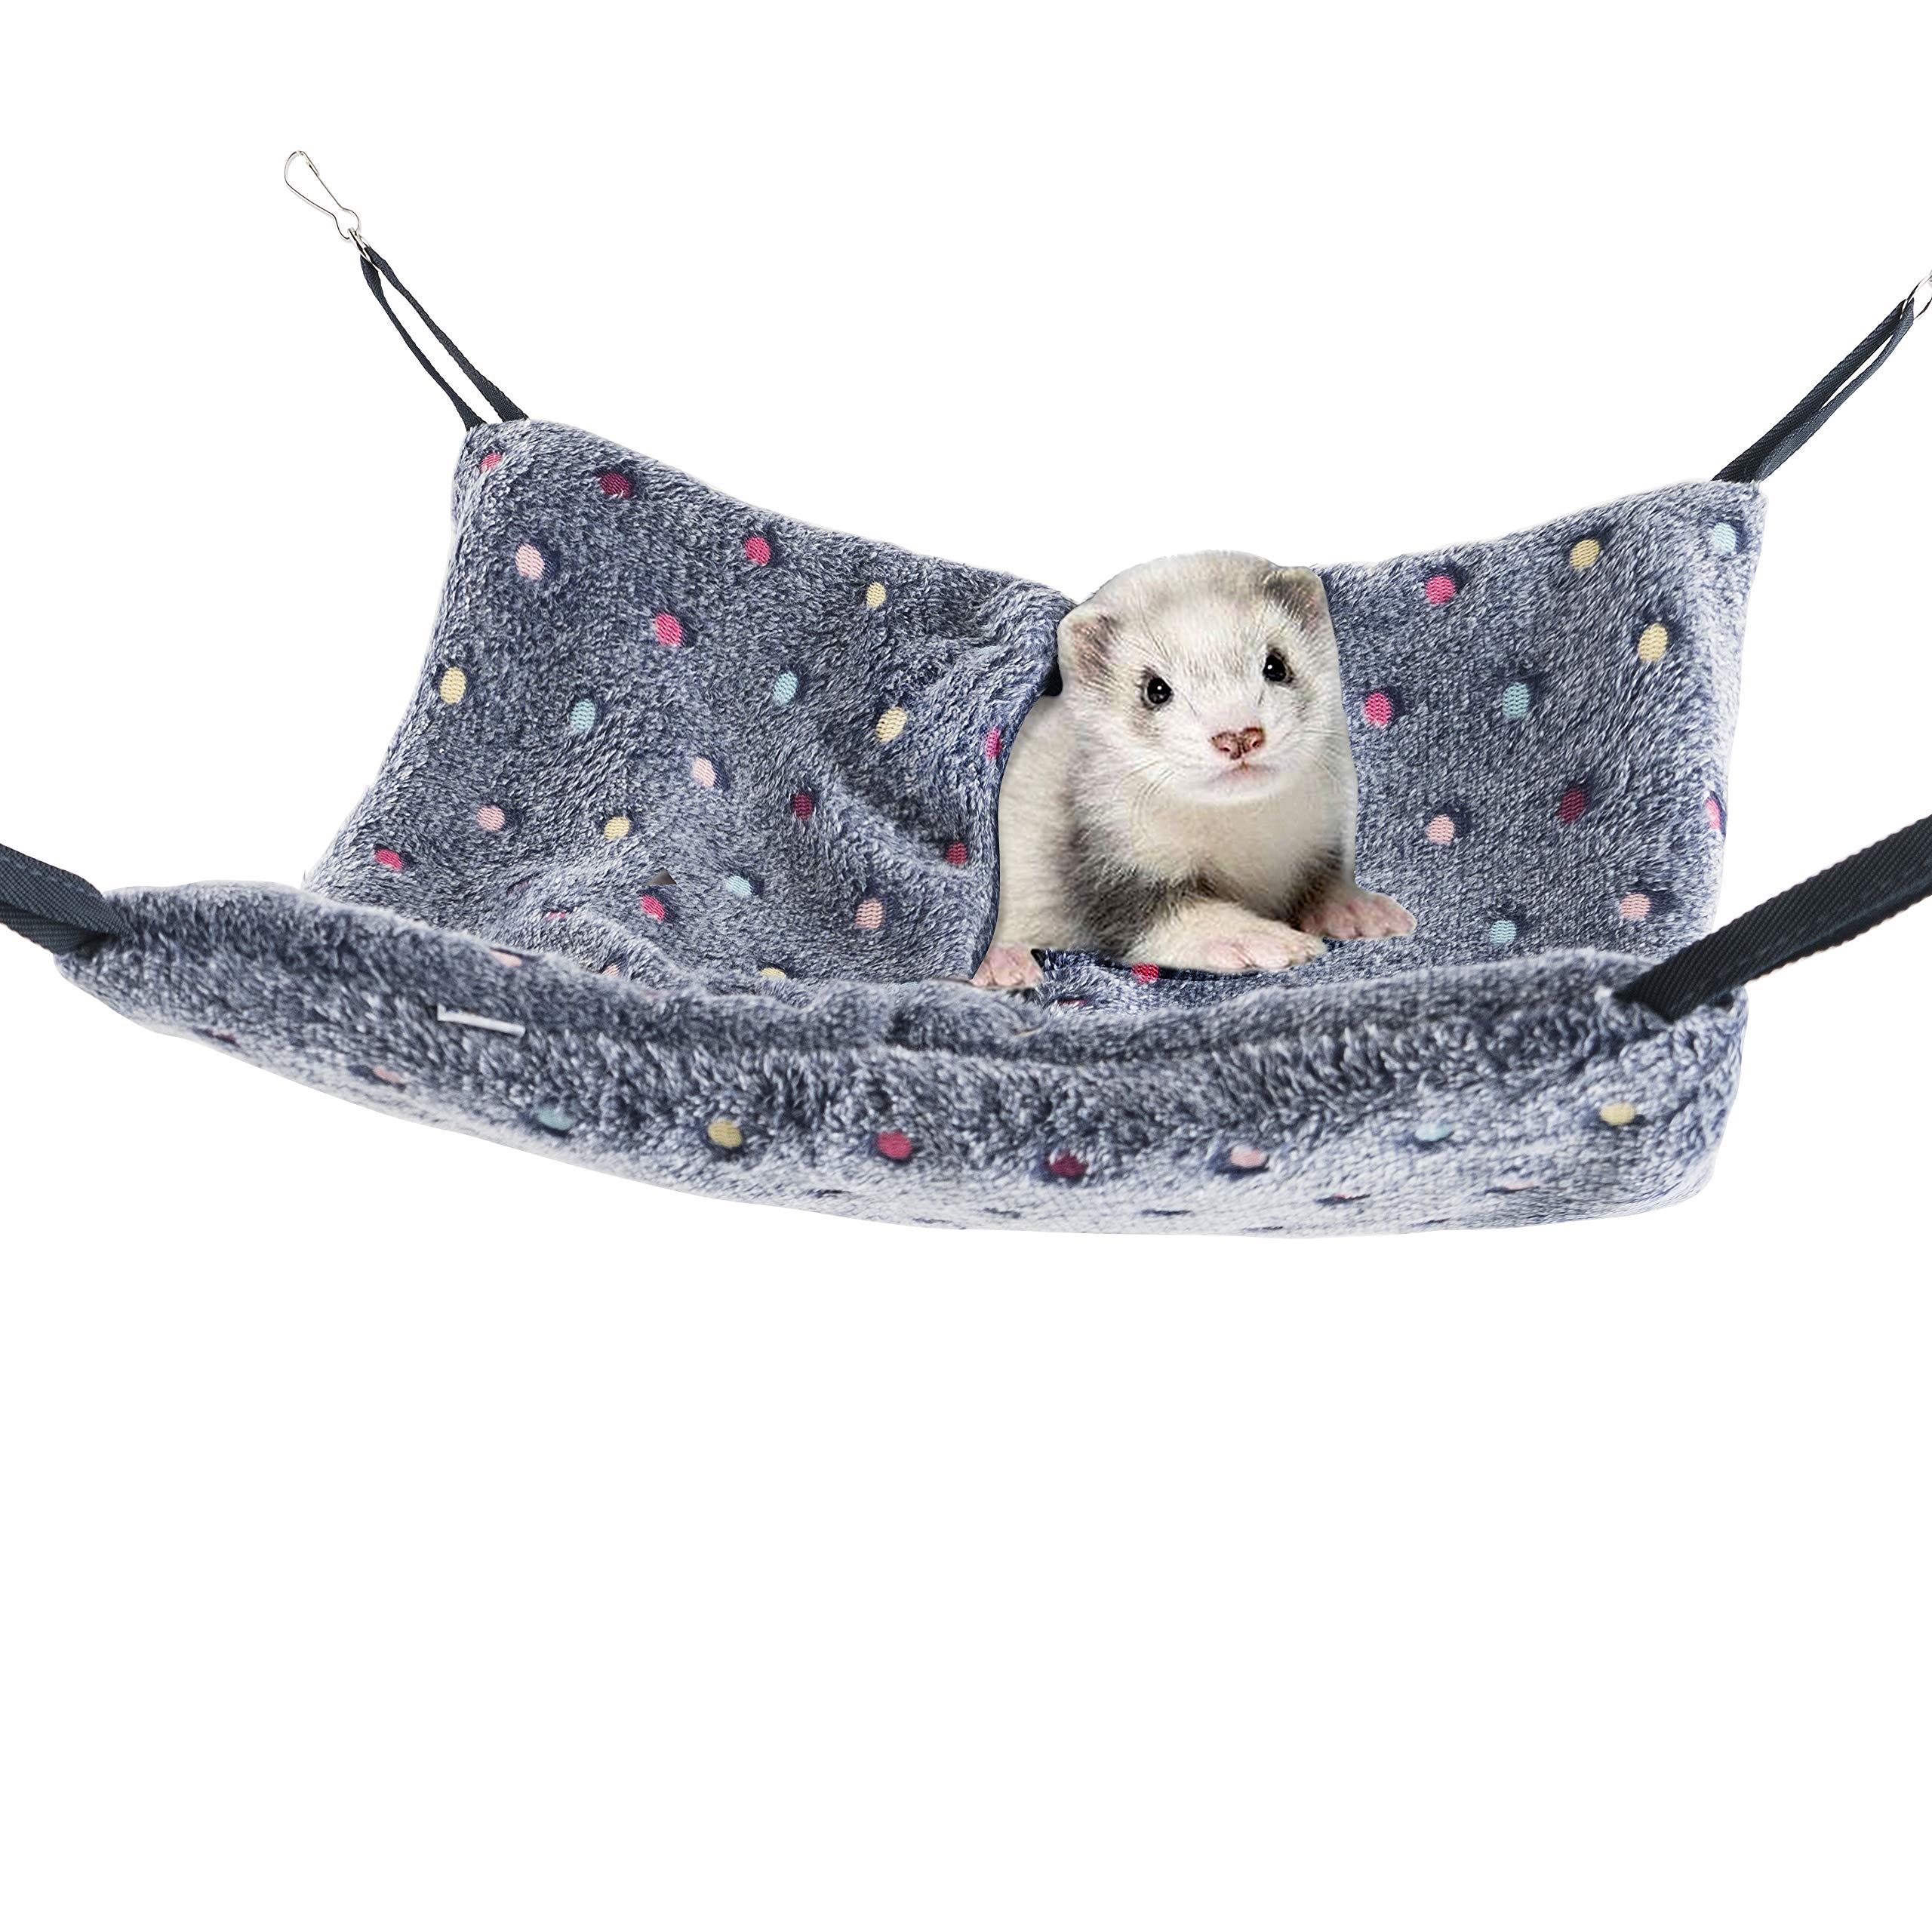 Niteangel Hanging Hammock Nap Sack Swing Bag Pet Sleeper for Ferret Rat Sugar Glider and Other Small Animals (Blue, Polka-dot) by Niteangel